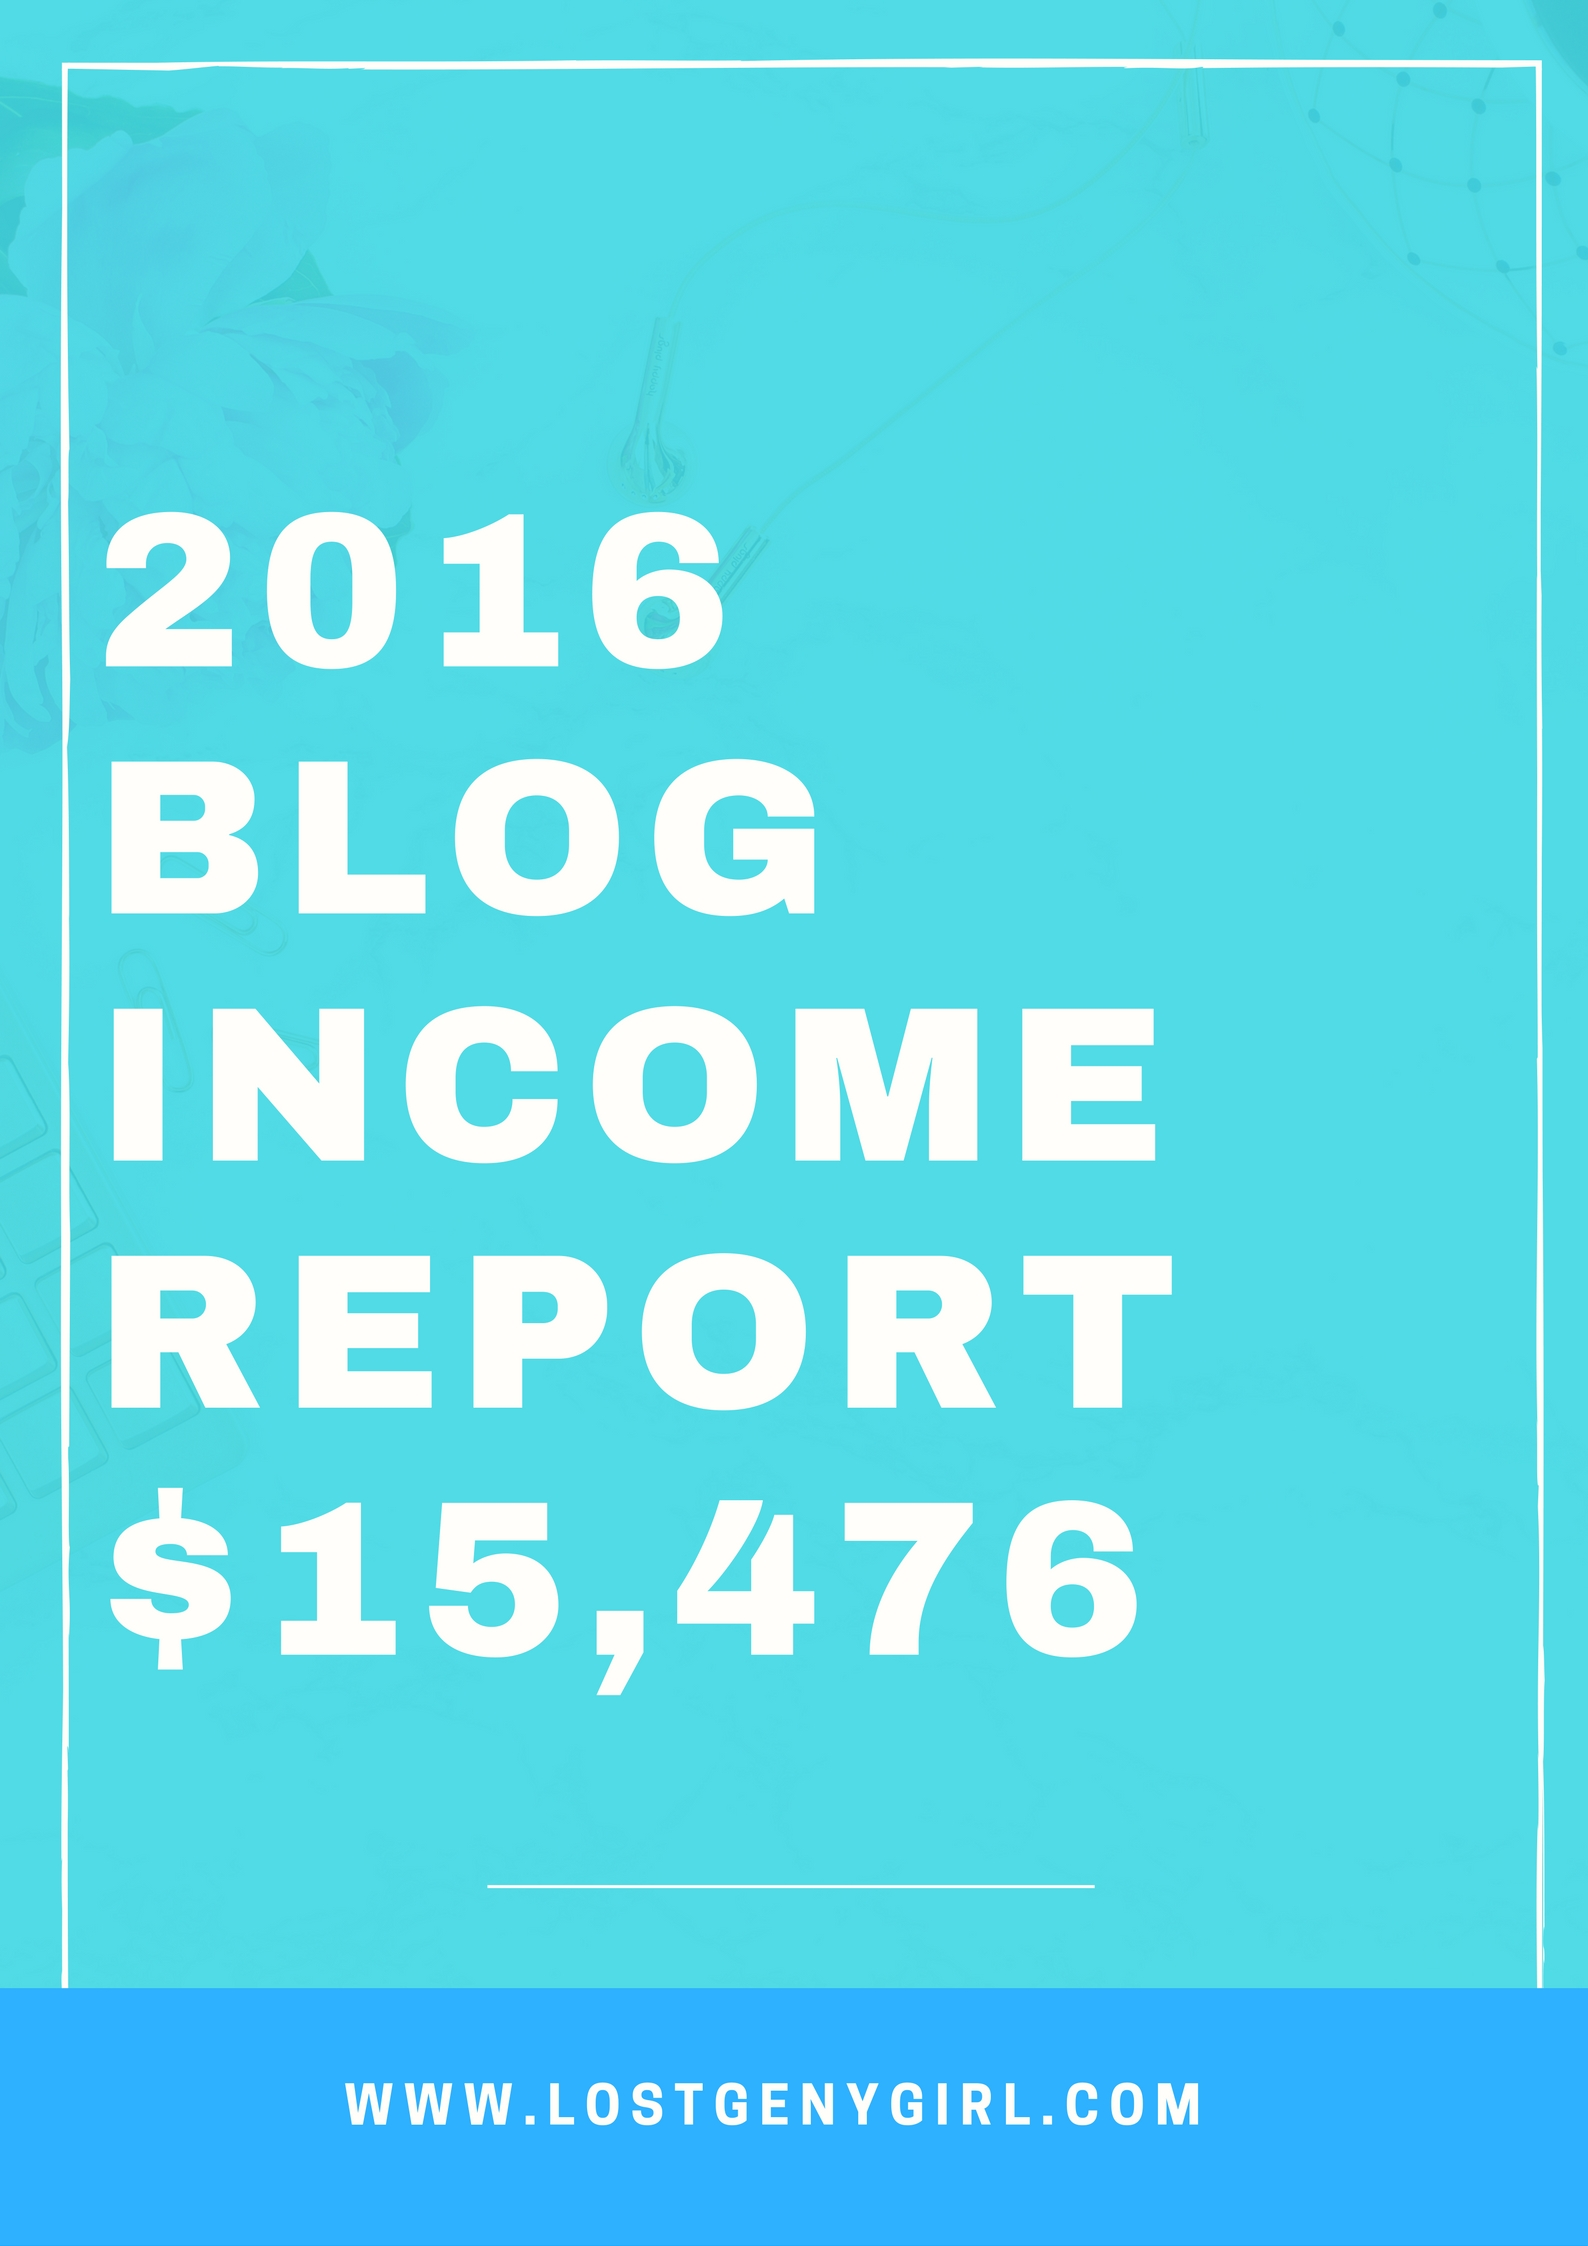 2016 Blog Income Report